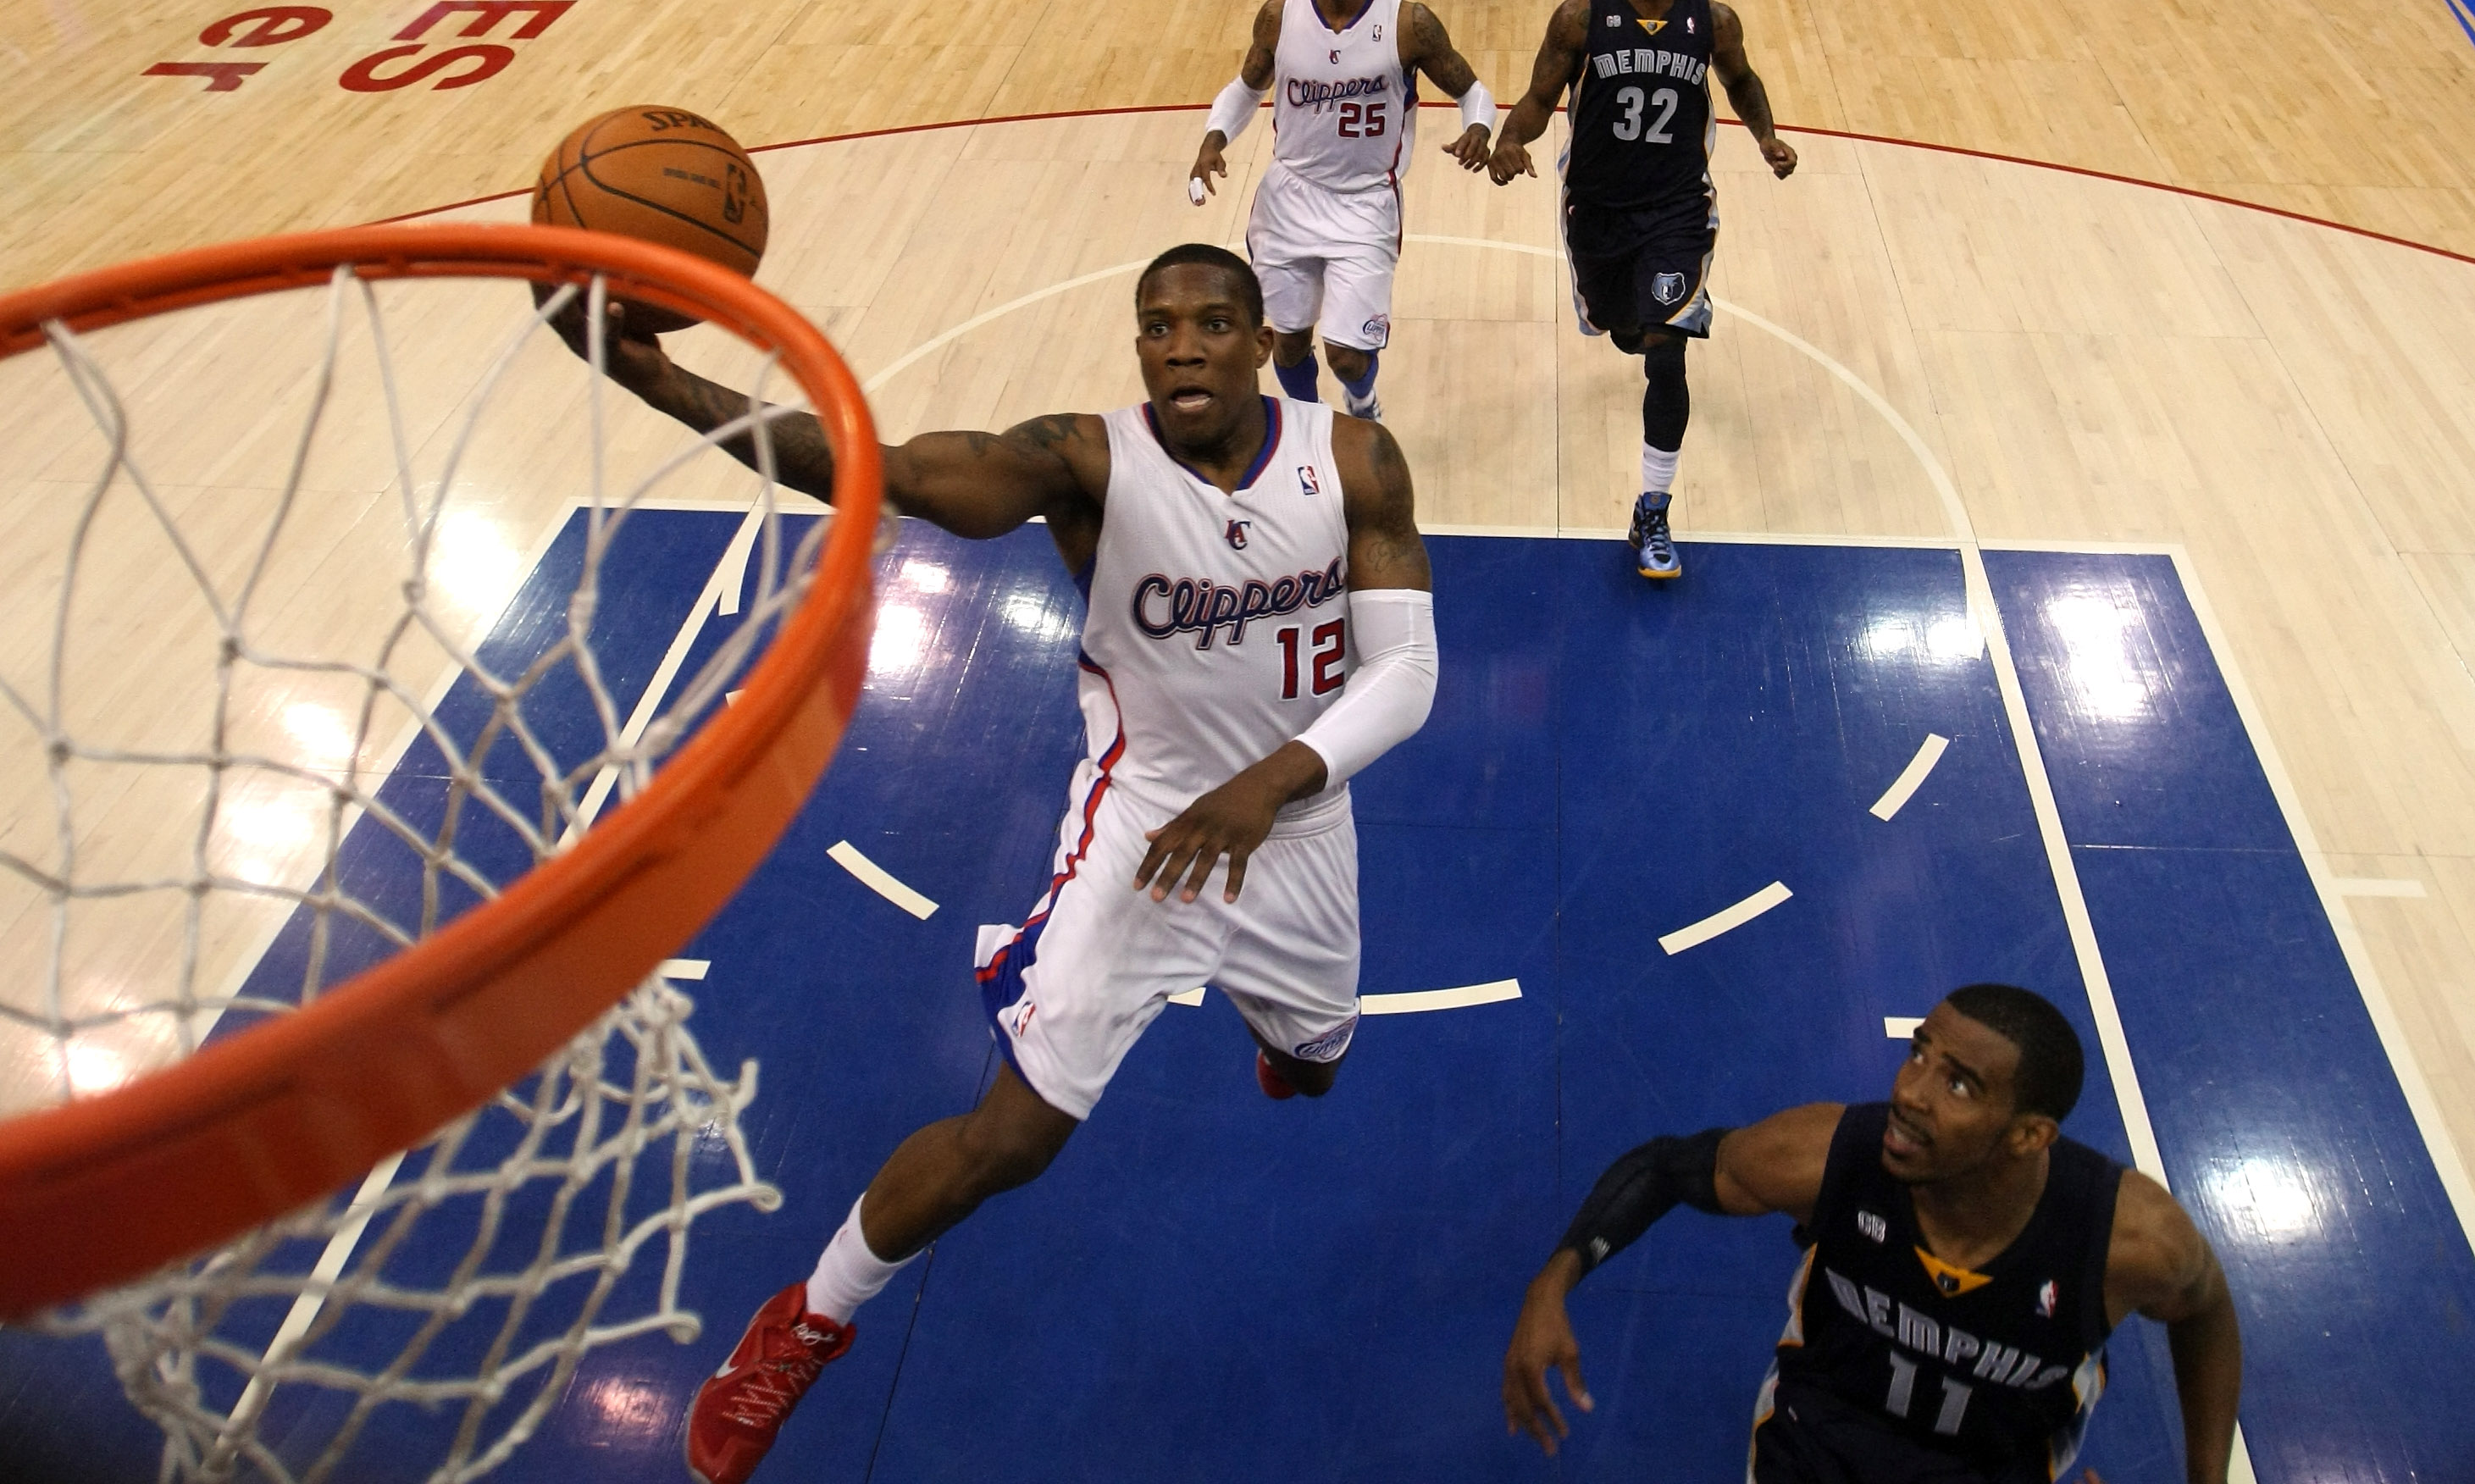 http://clippers.blog.ocregister.com/files/2012/07/144217281.jpg